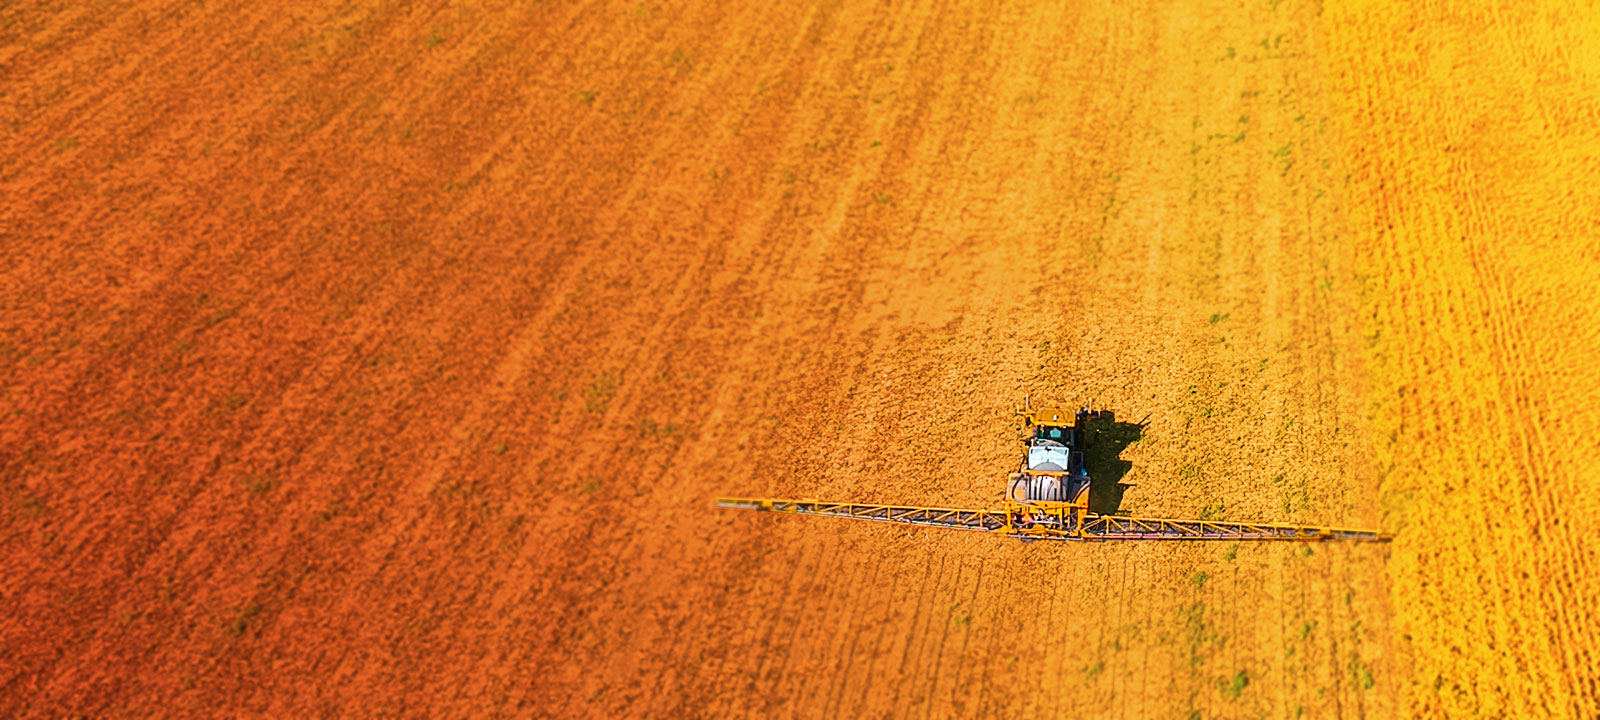 Stylized, blurred overhead view of field and chemical fertilizer spreader tractor